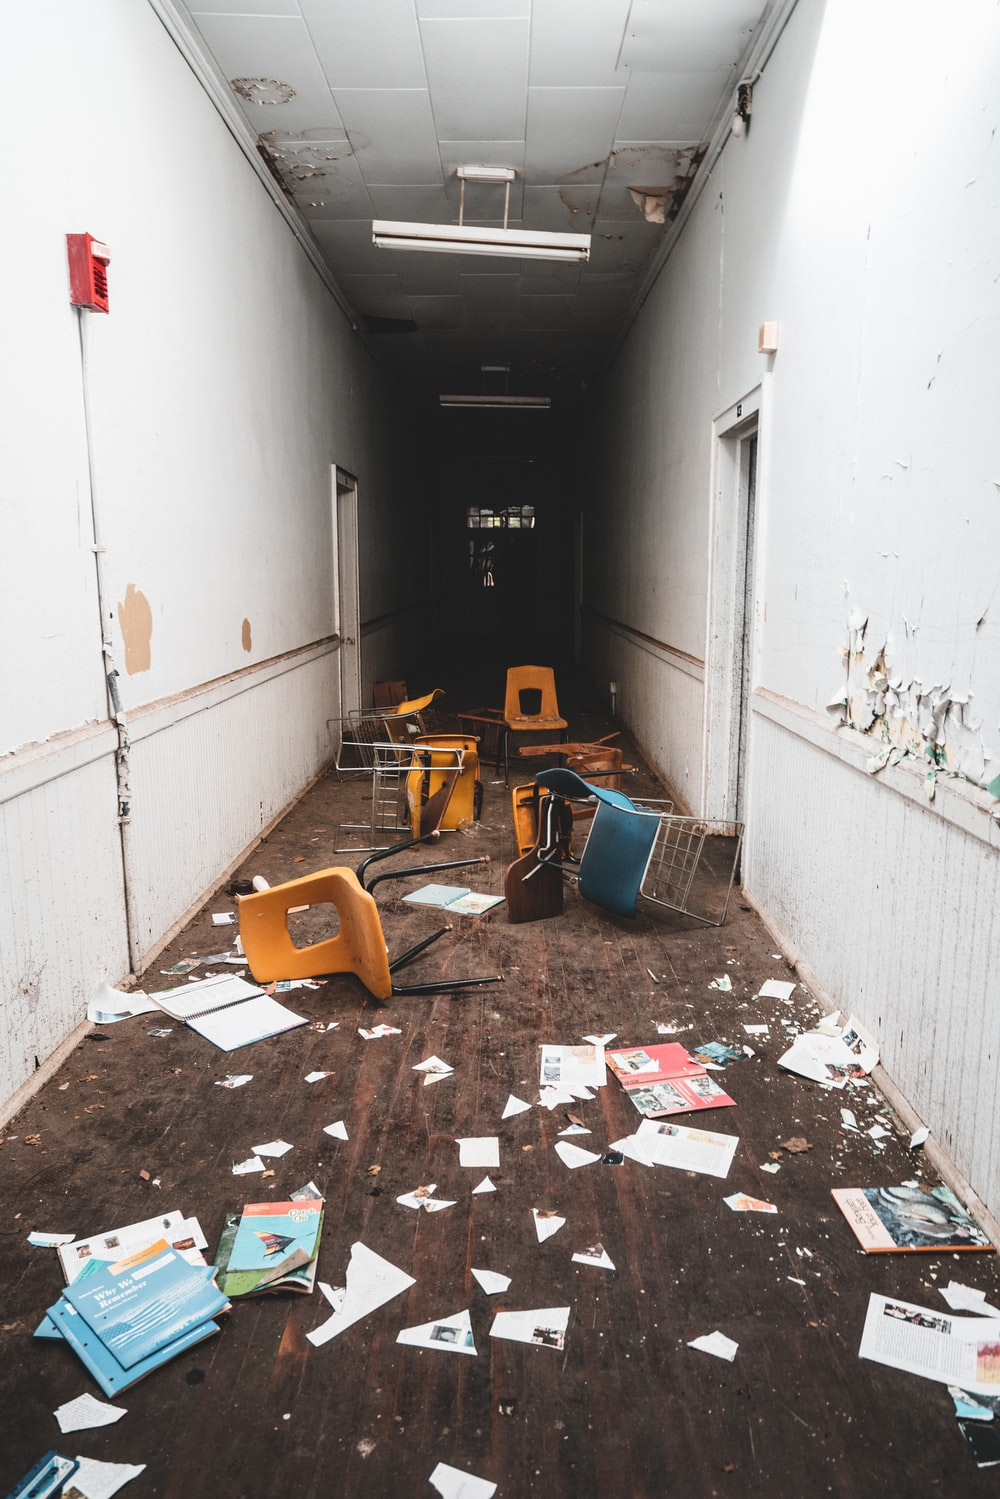 hallway with chairs and papers on floor